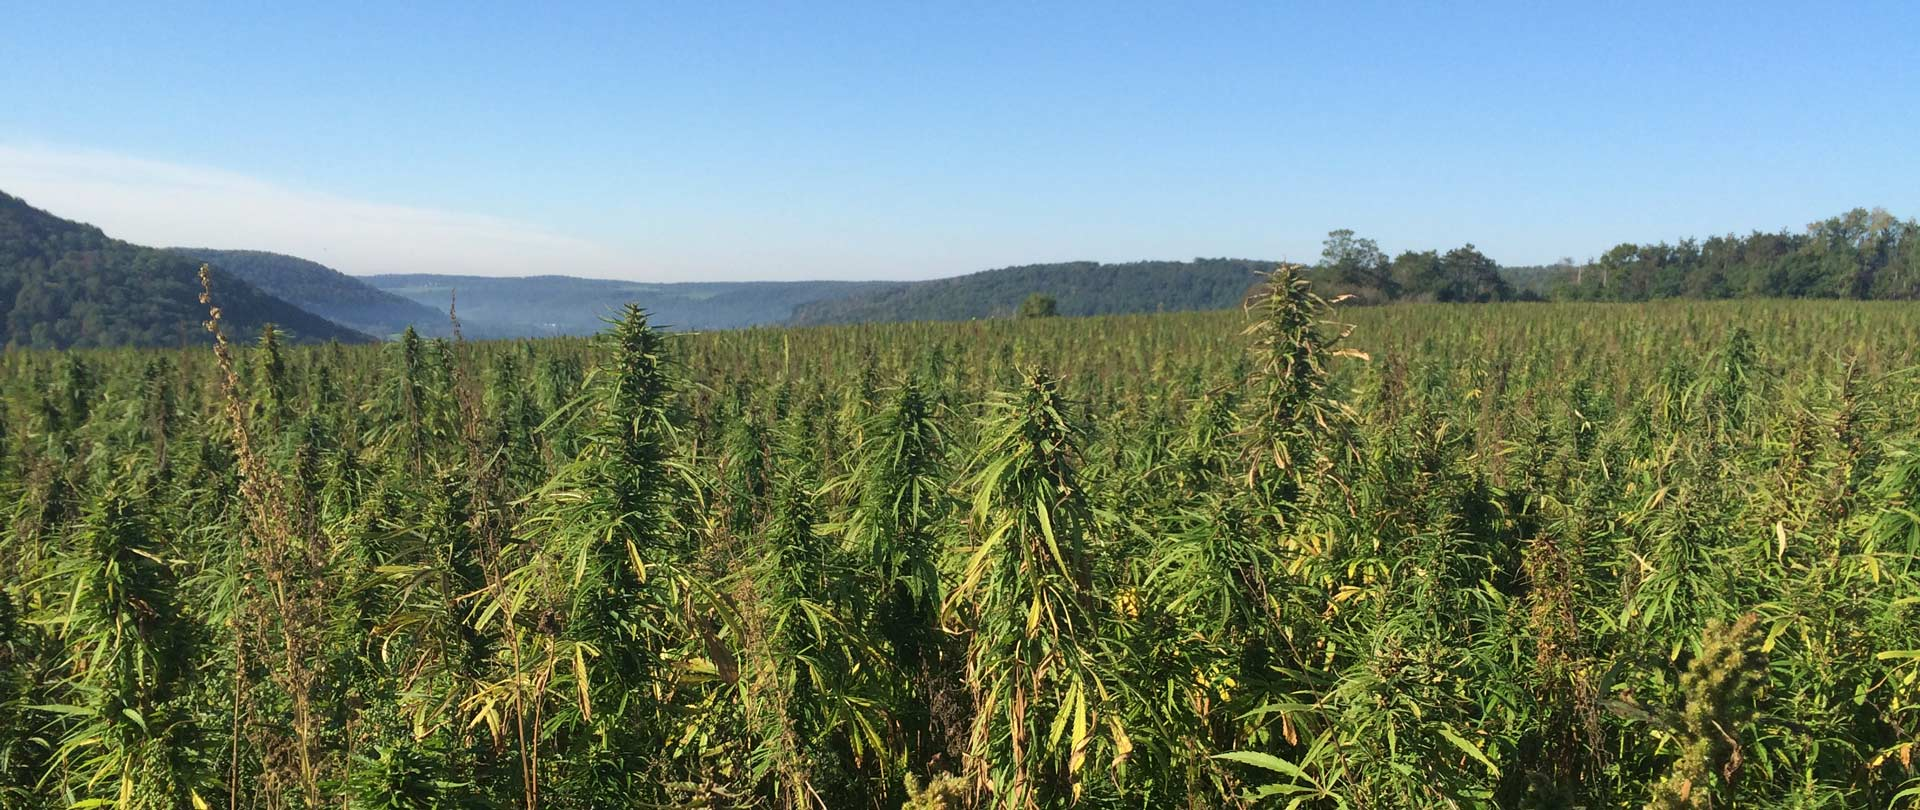 Industrial Hemp Research Initiative in New York State